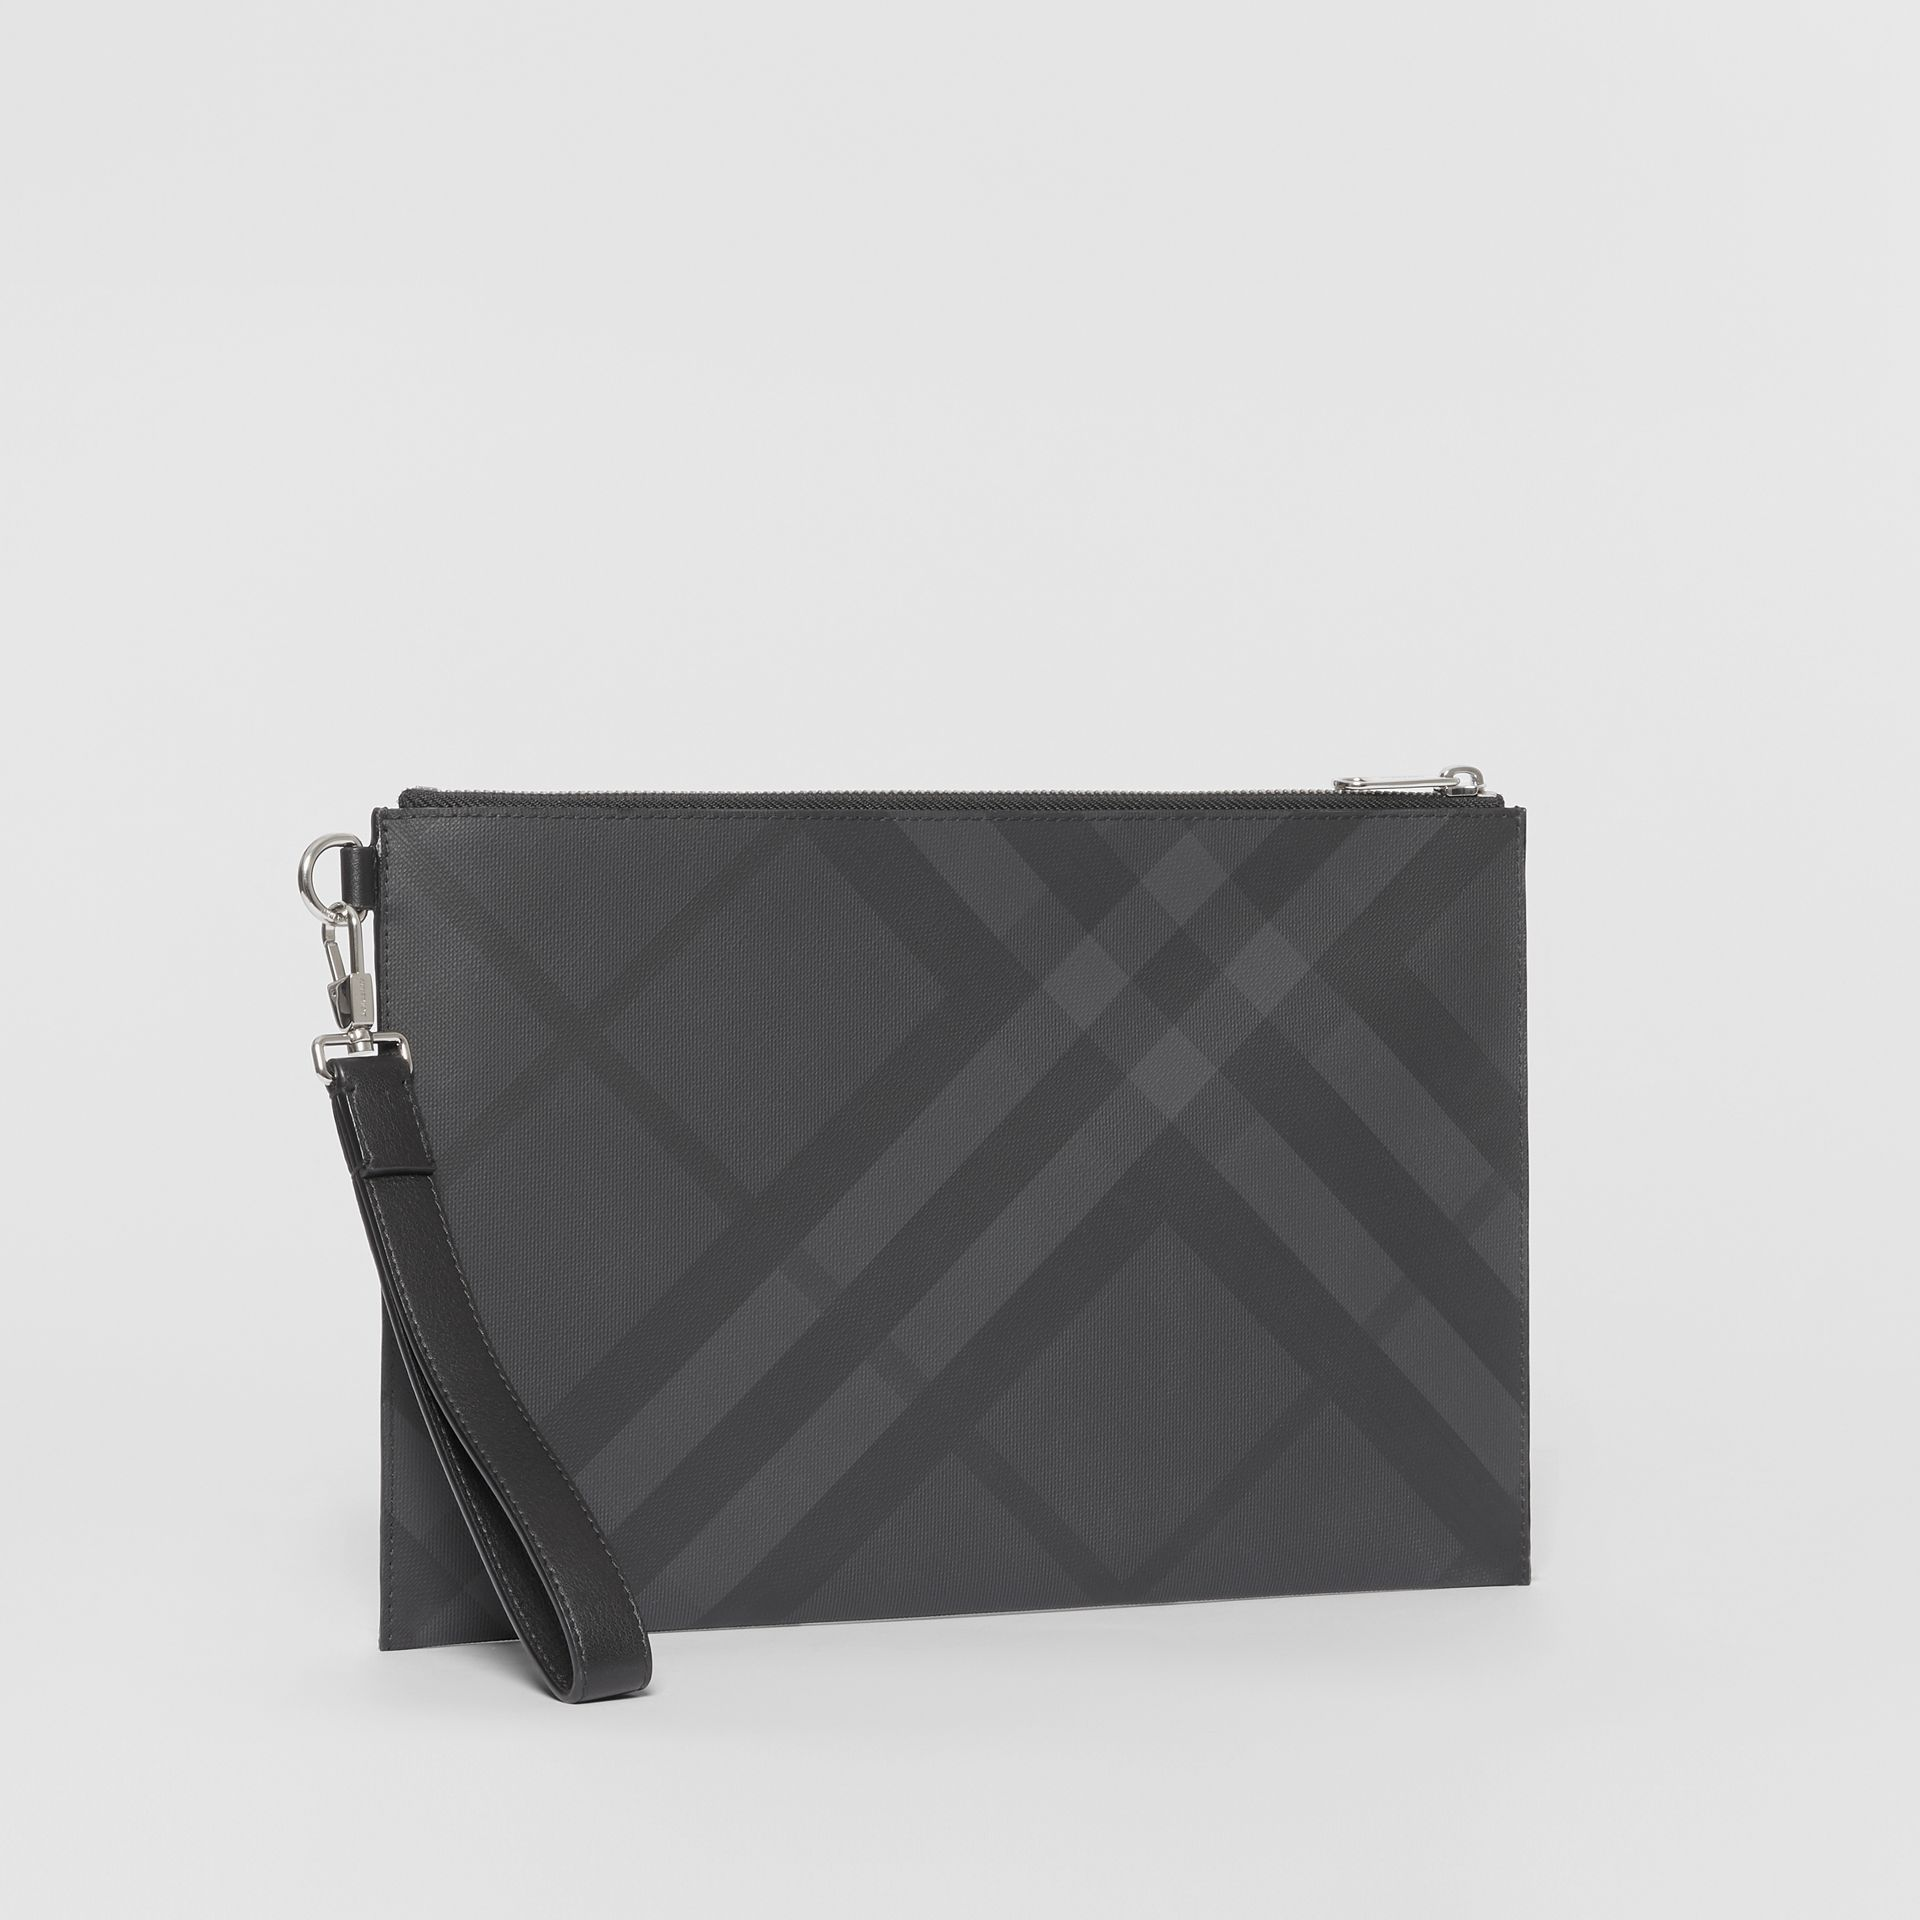 Pochette zippée London check avec cuir (Anthracite Sombre) - Homme | Burberry - photo de la galerie 5